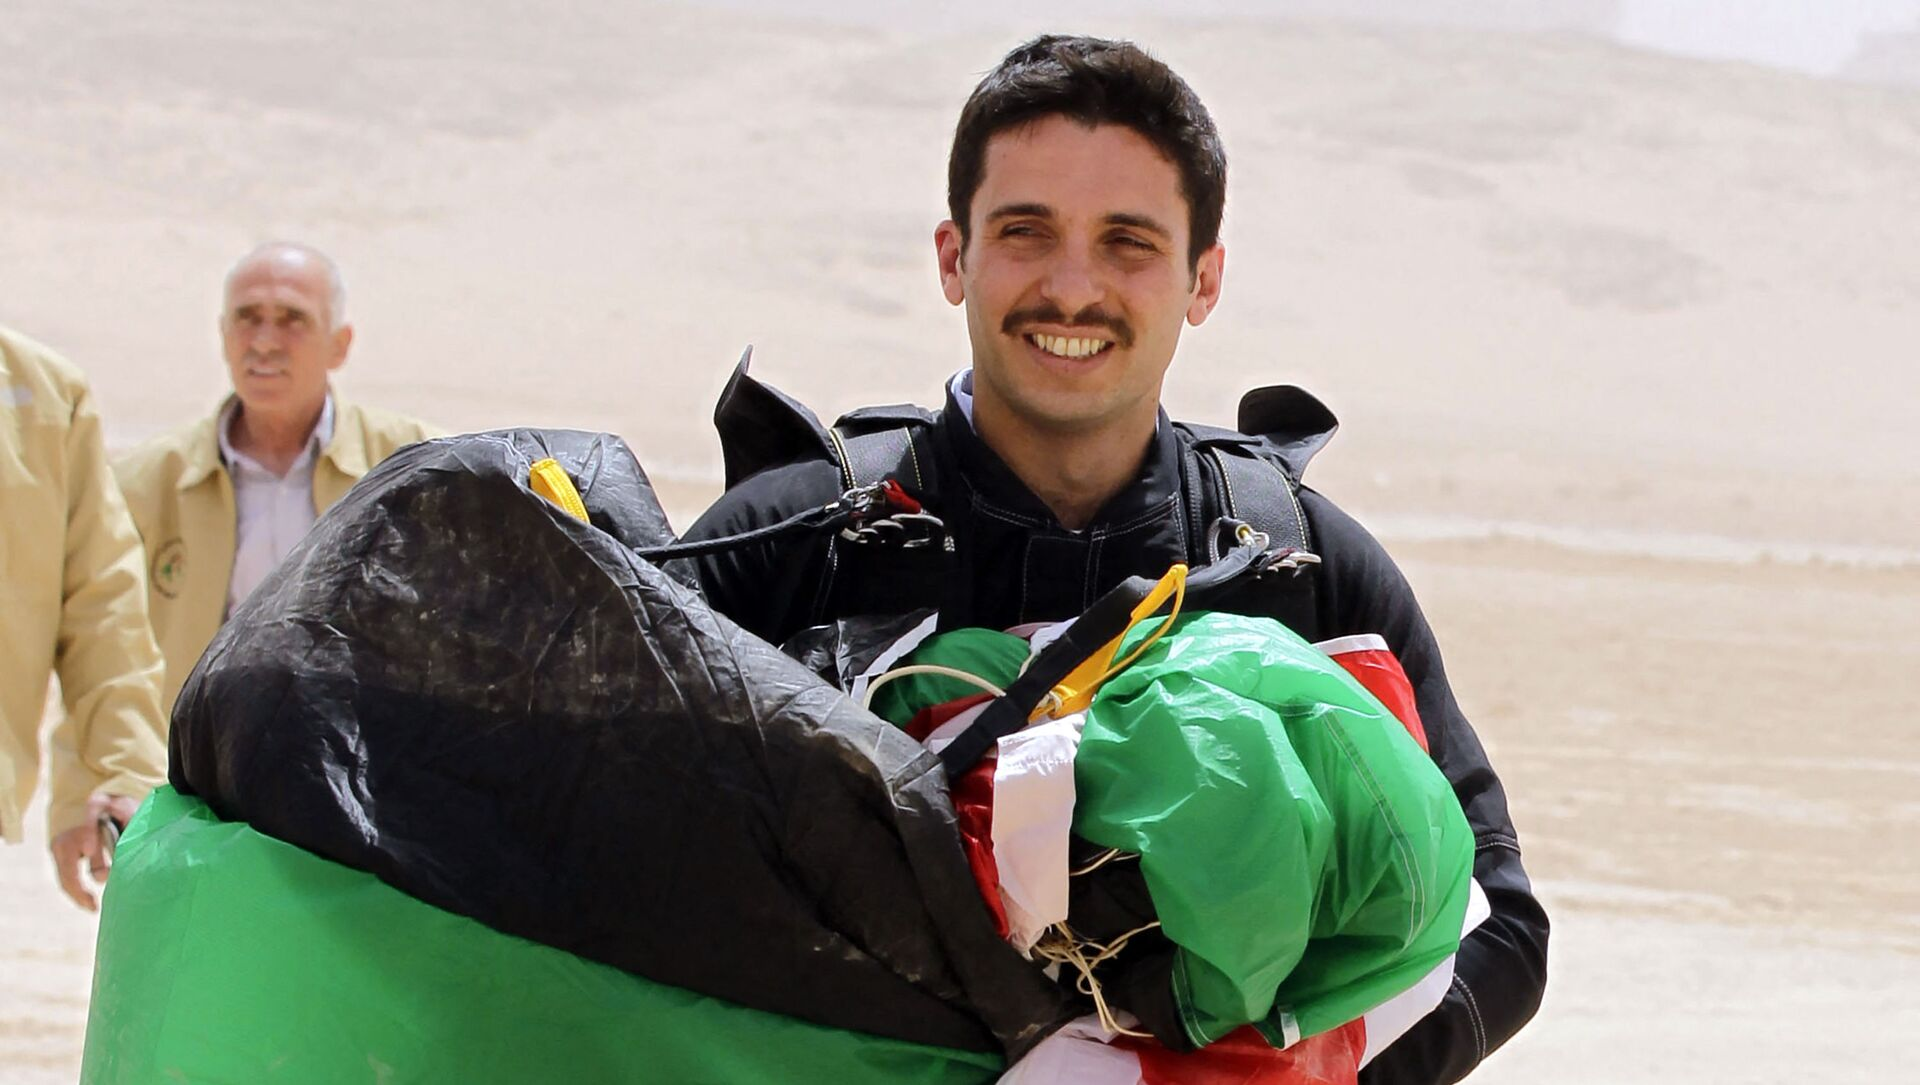 In this file photo taken on April 17, 2012 shows Jordanian Prince Hamzah bin al-Hussein, president of the Royal Aero Sports Club of Jordan, carries a parachute during a media event to announce the launch of Skydive Jordan, in the Wadi Rum desert. - A top former Jordanian royal aide was among several suspects arrested on April 3, 2021, as the army cautioned Prince Hamzah bin Hussein, the half-brother of King Abdullah II against damaging the country's security. - Sputnik Italia, 1920, 11.04.2021